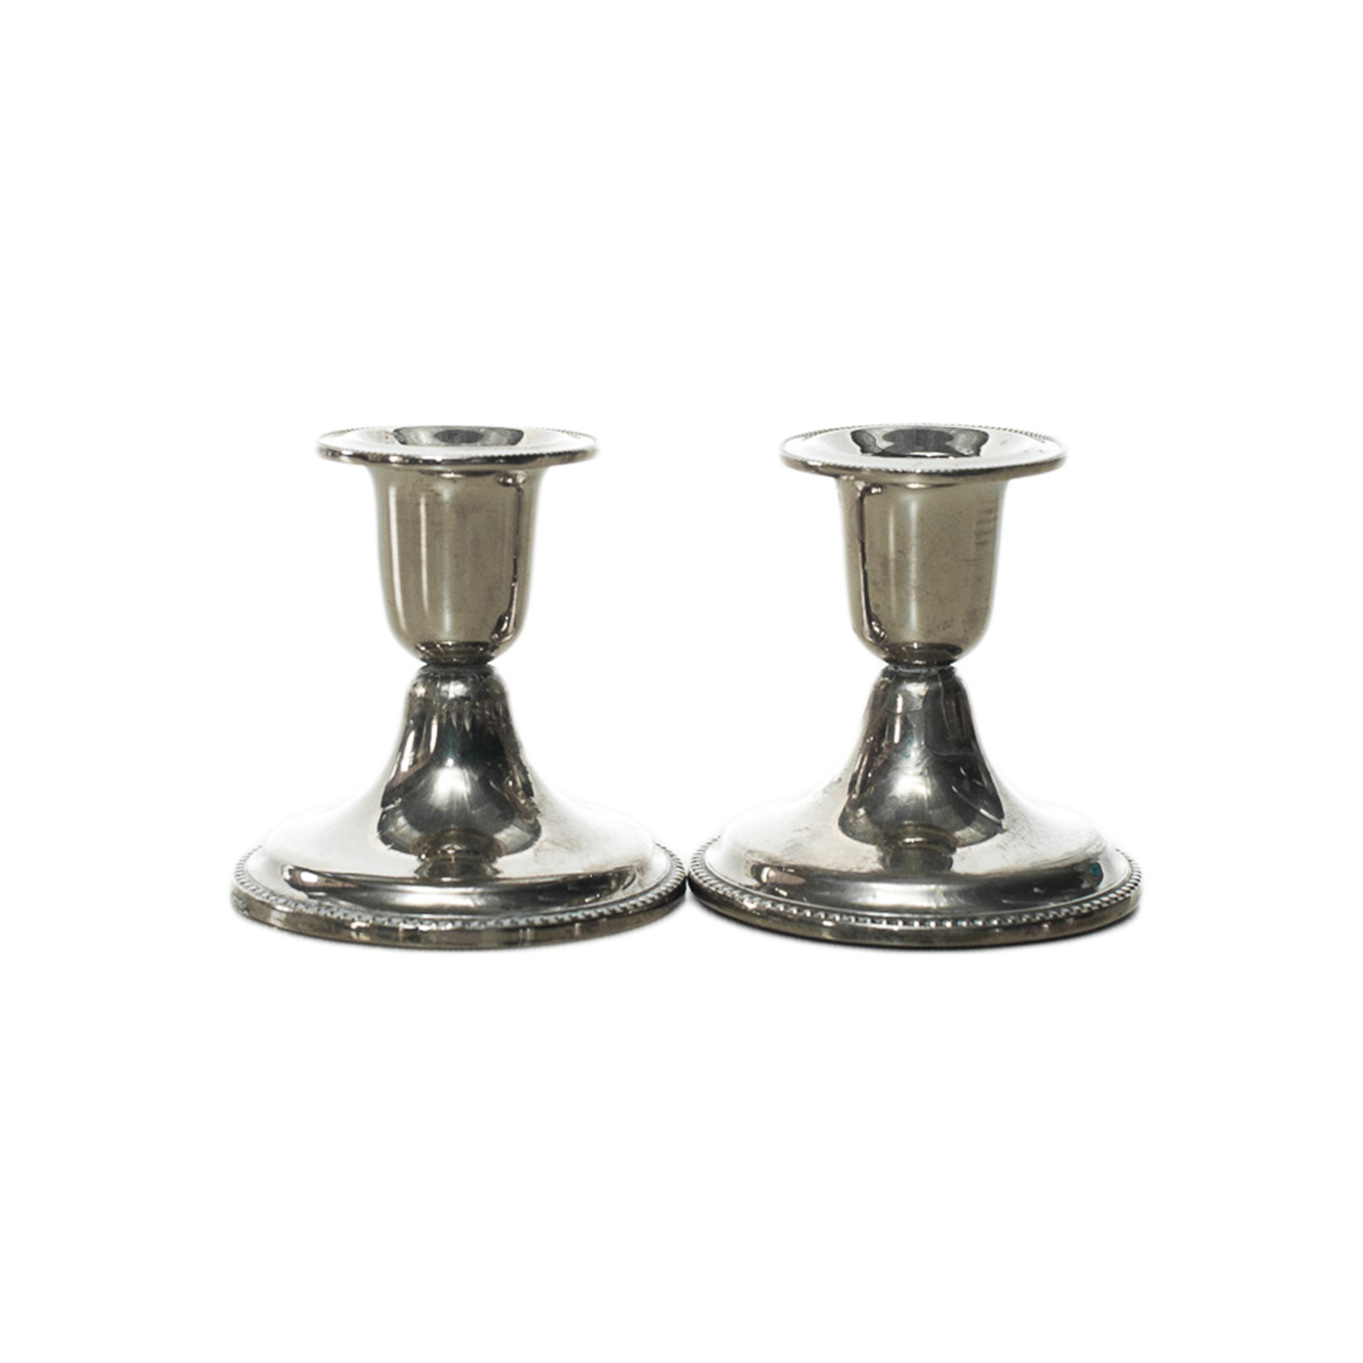 Silver Candlestick Holders